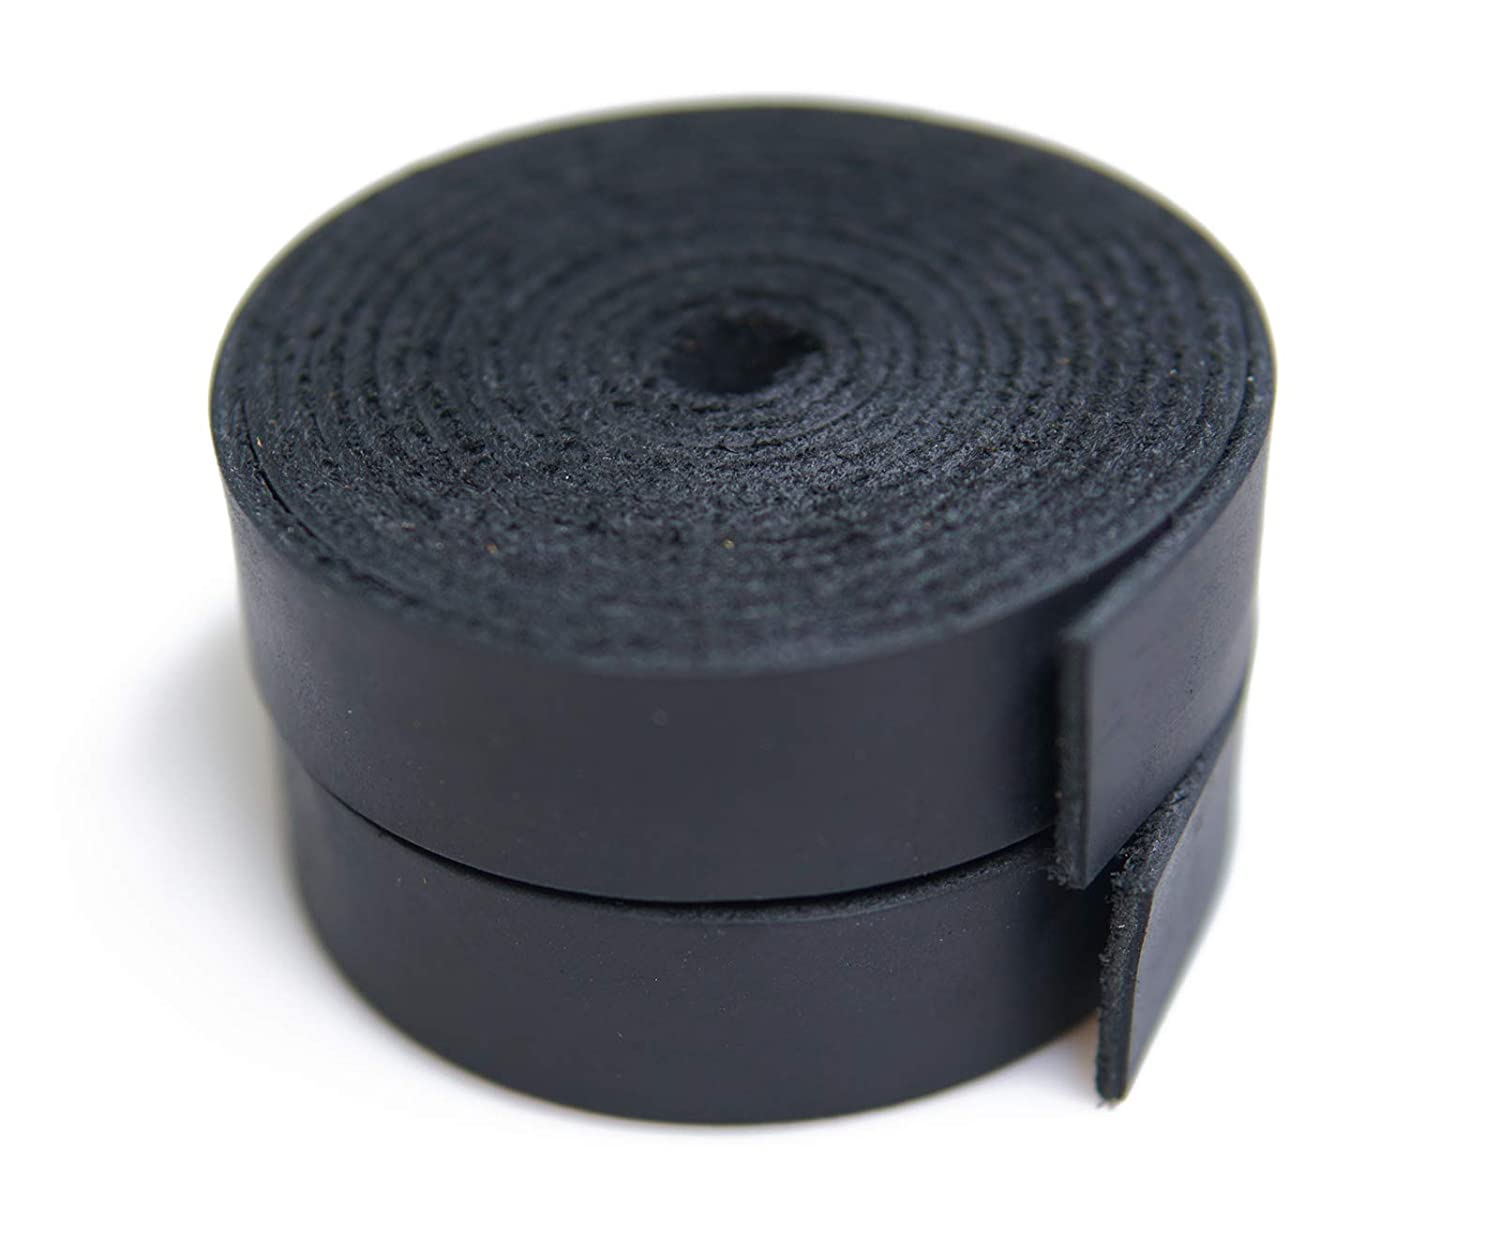 Pure Black Jeereal Leather Strap 2.0mm Thick Cord Braiding String for Crafts//Tooling//Workshop Handmade 3//4inch Wide,72inches Long